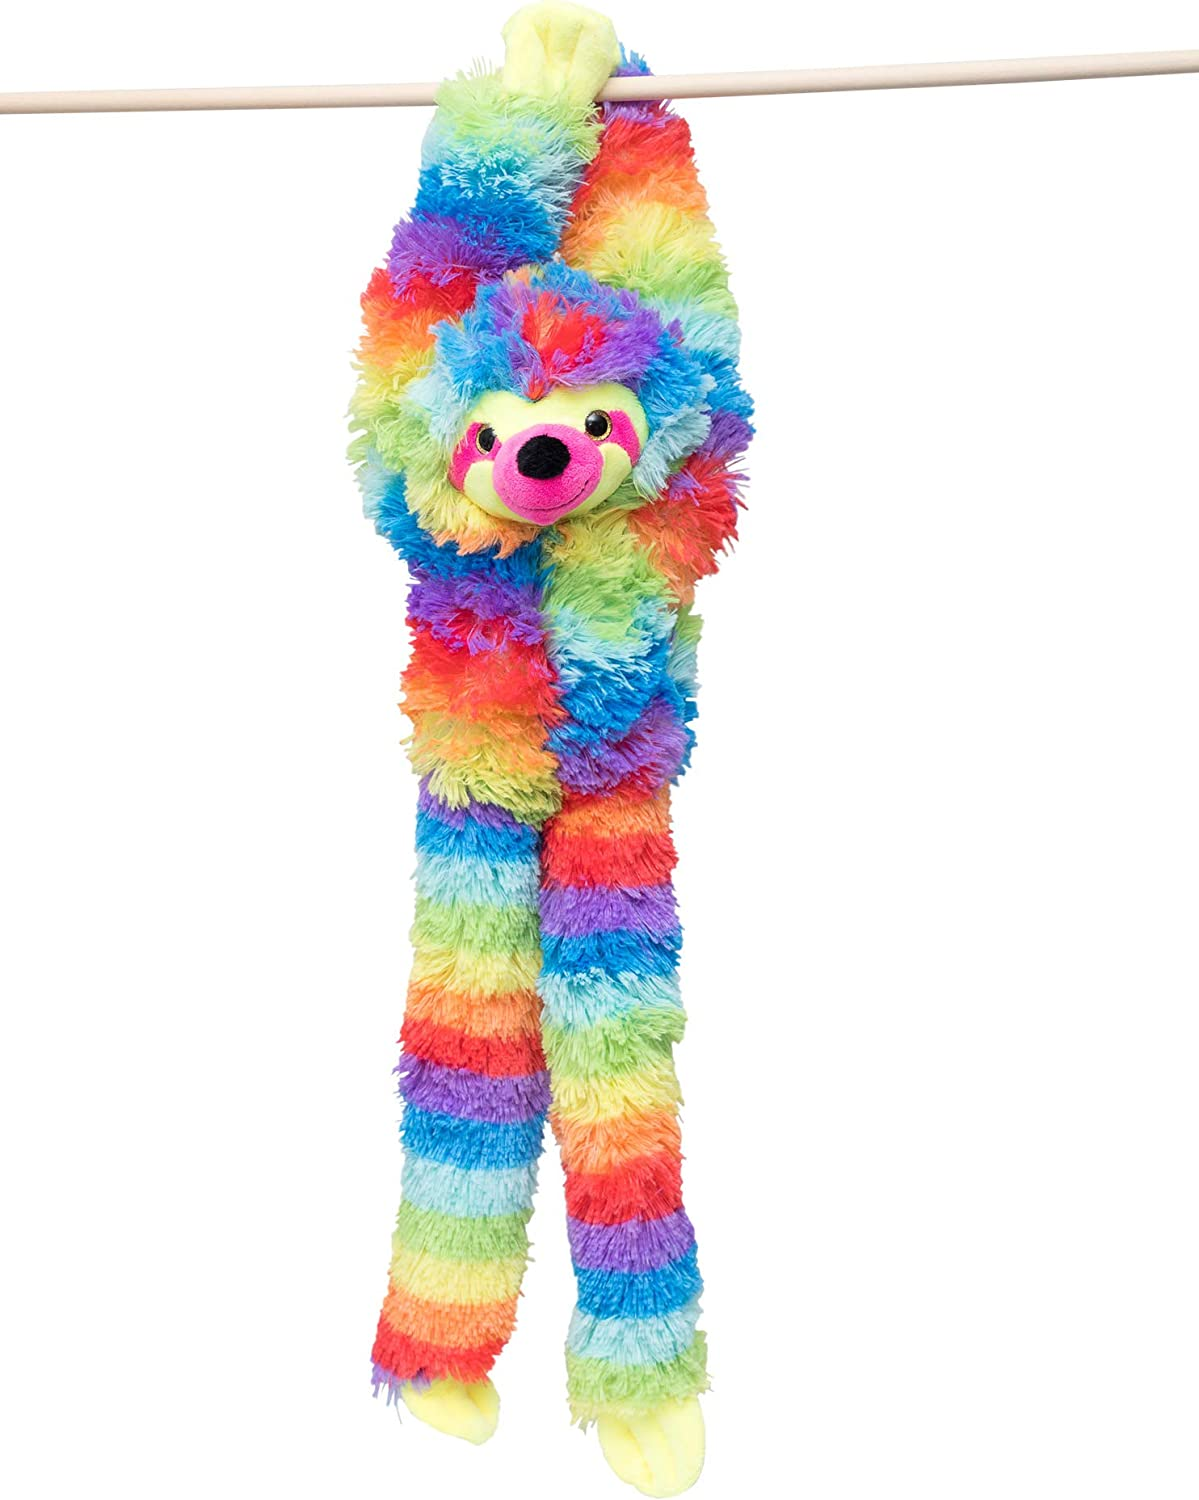 Edgewood Toys 24-Inch Hanging Tie Dye Sloth Stuffed Animal – Sloth Plush Toy with Specially Designed Ultra Soft Plush Feel - Hands That Connect Together - Assorted Rainbow Colors